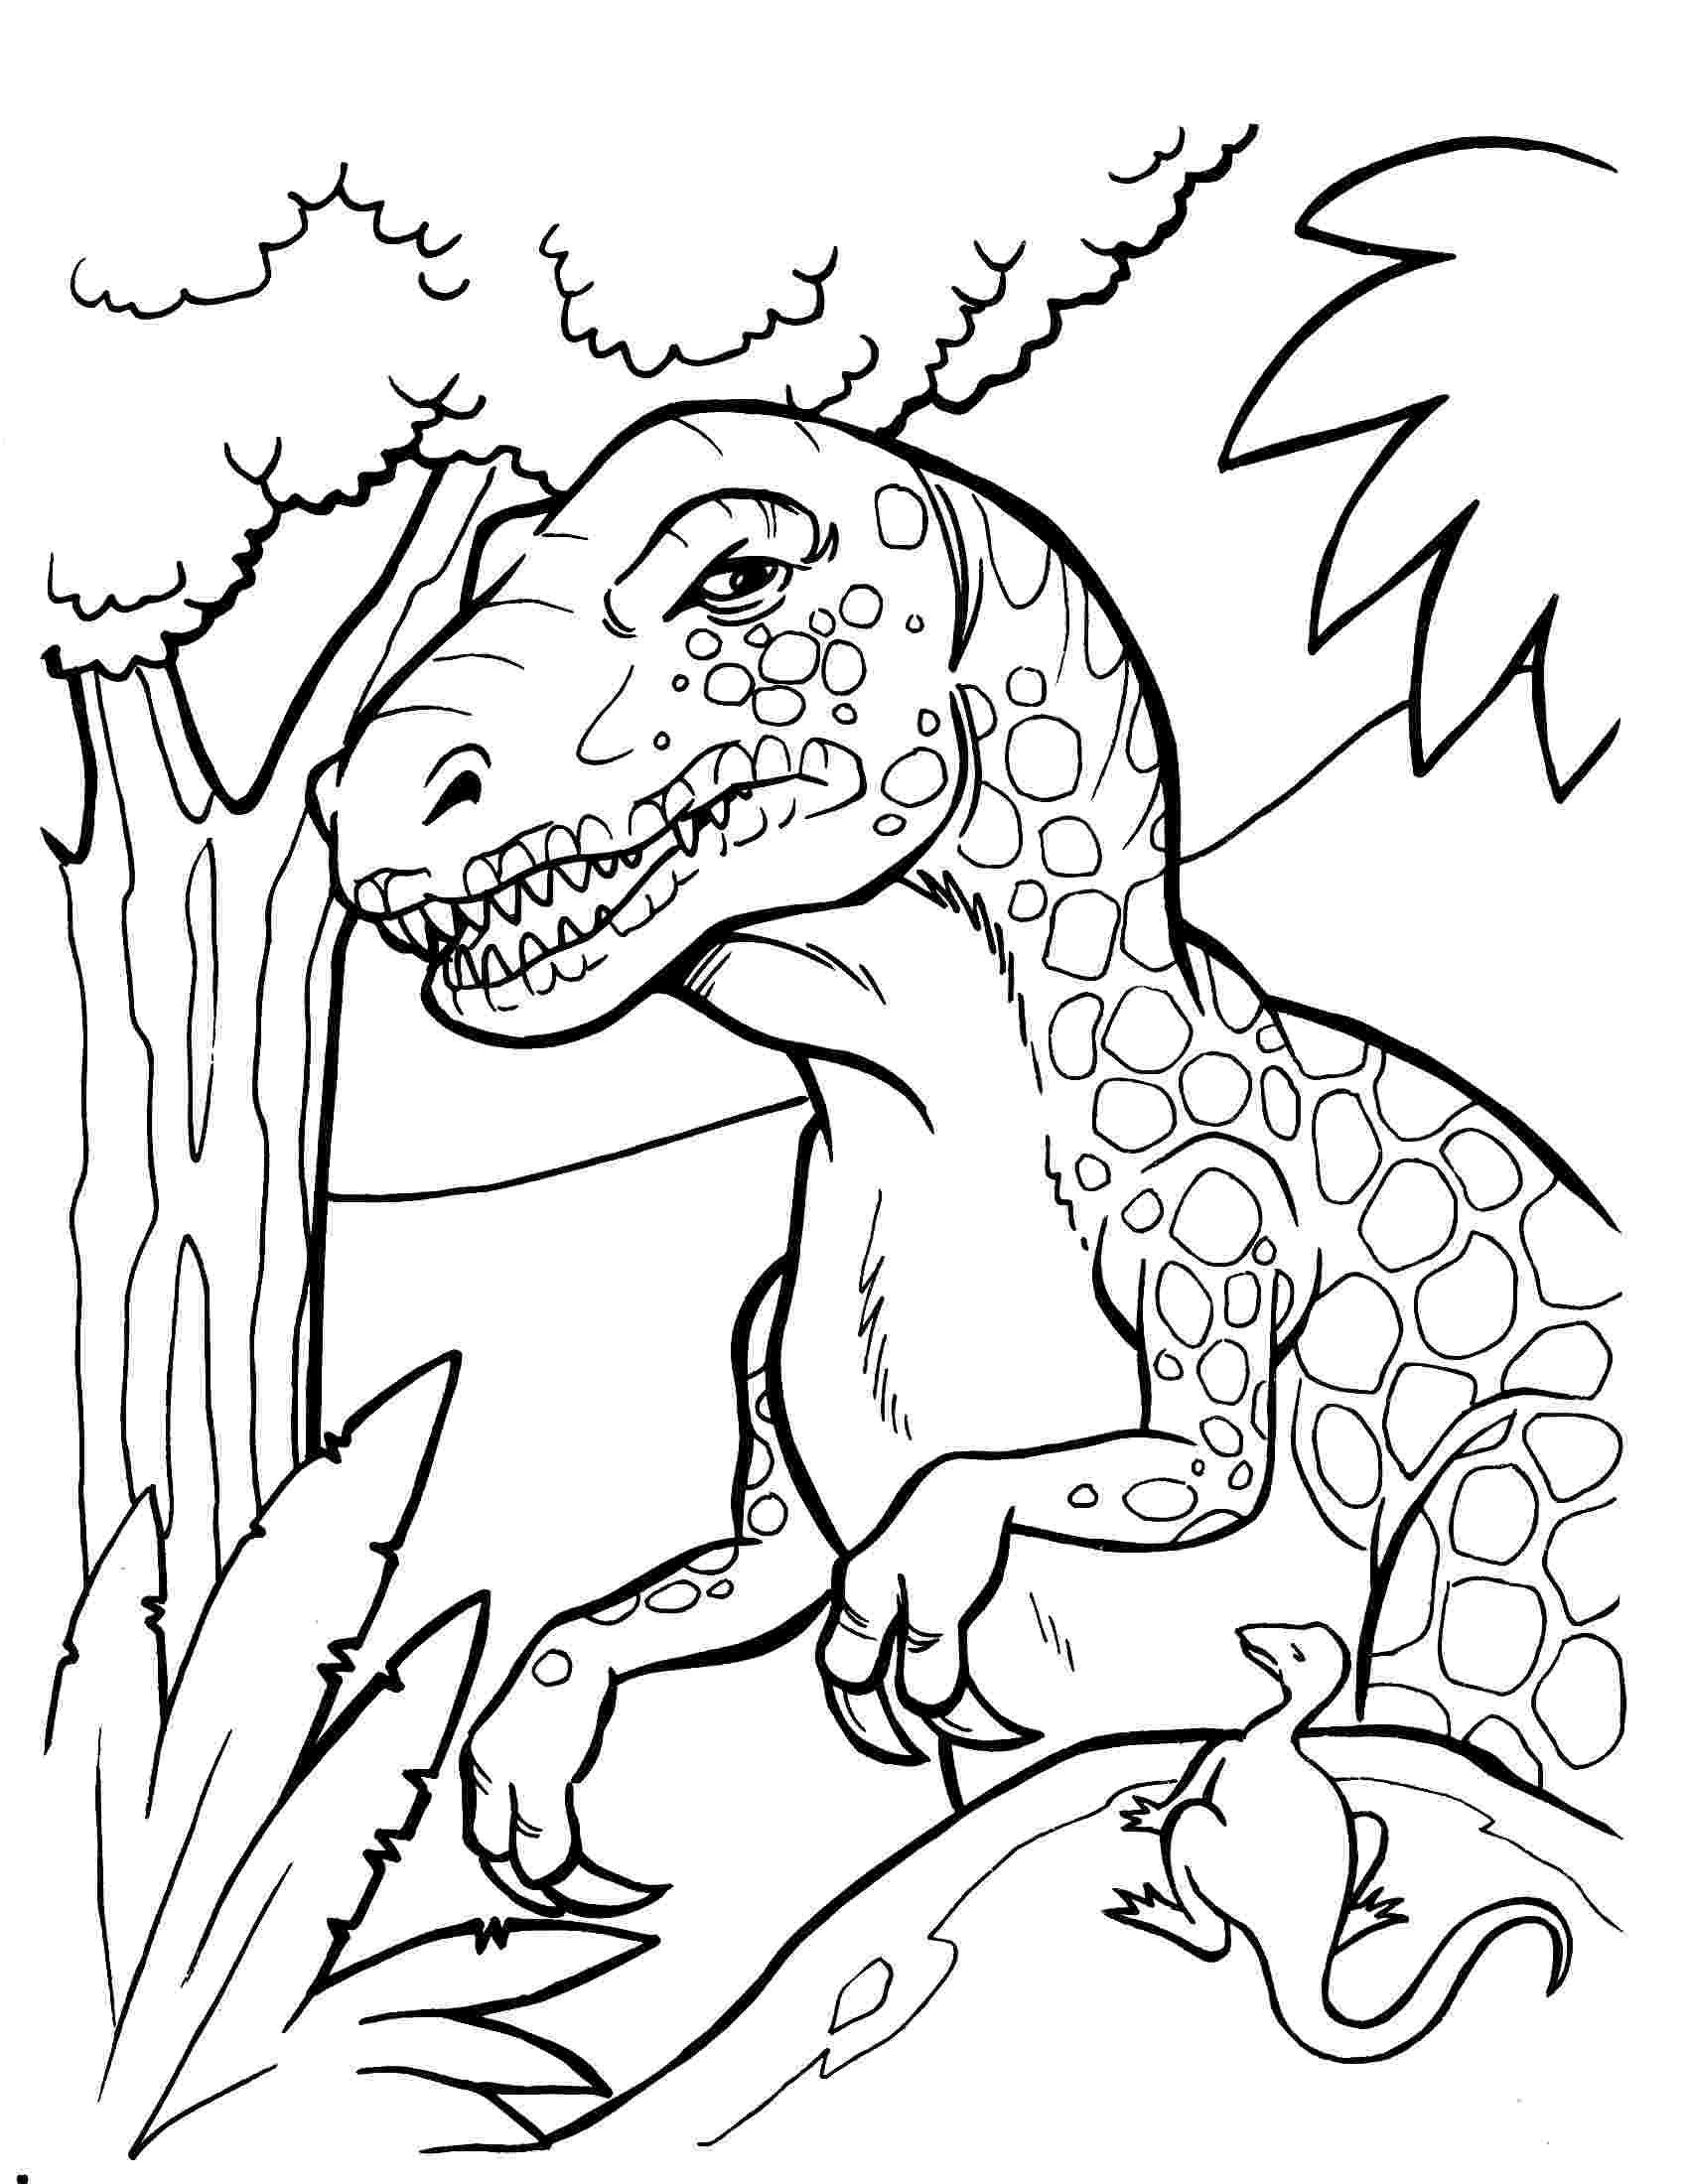 dinosaur colouring page lets coloring book prehistoric jurassic world dinosaurs dinosaur page colouring